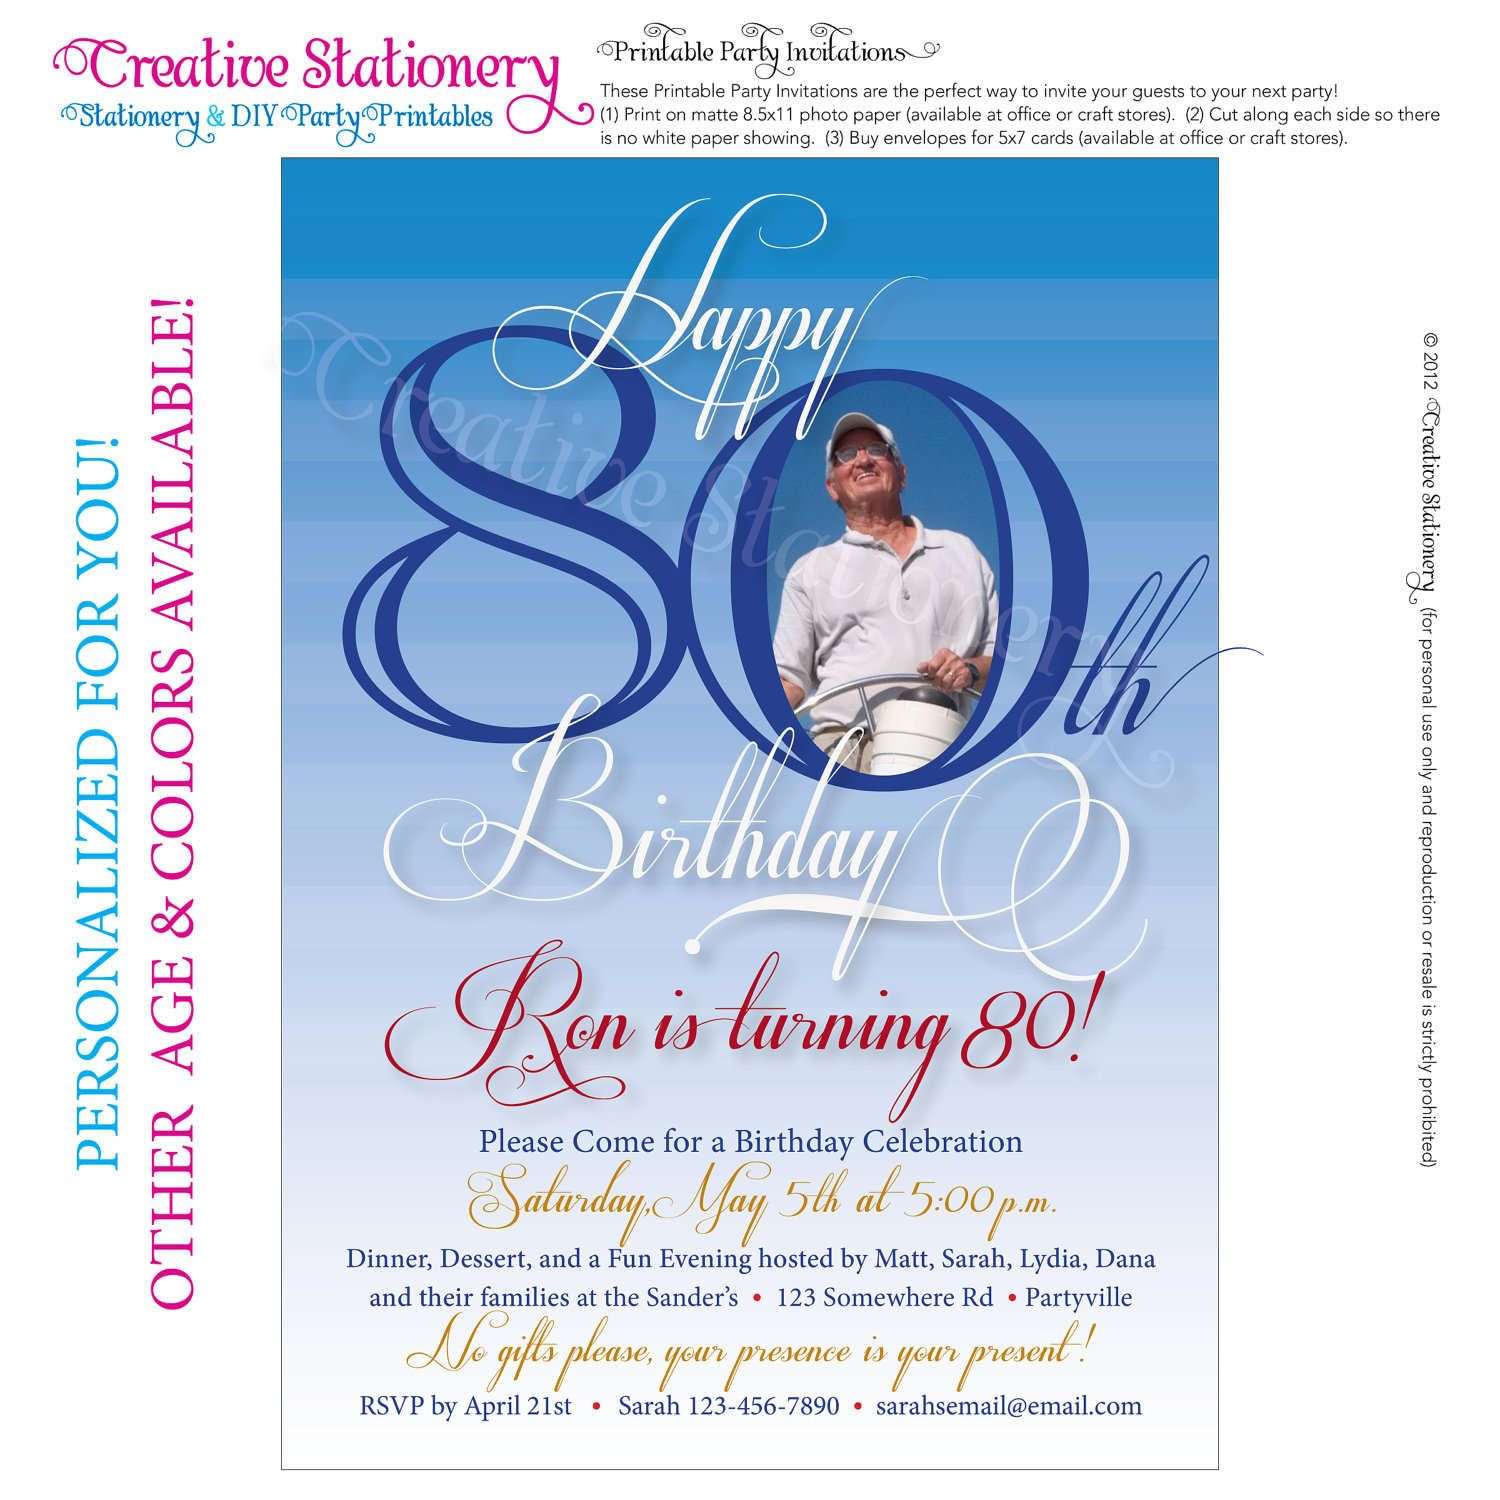 Free Printable Invitations For 80th Birthday Party | Party ...